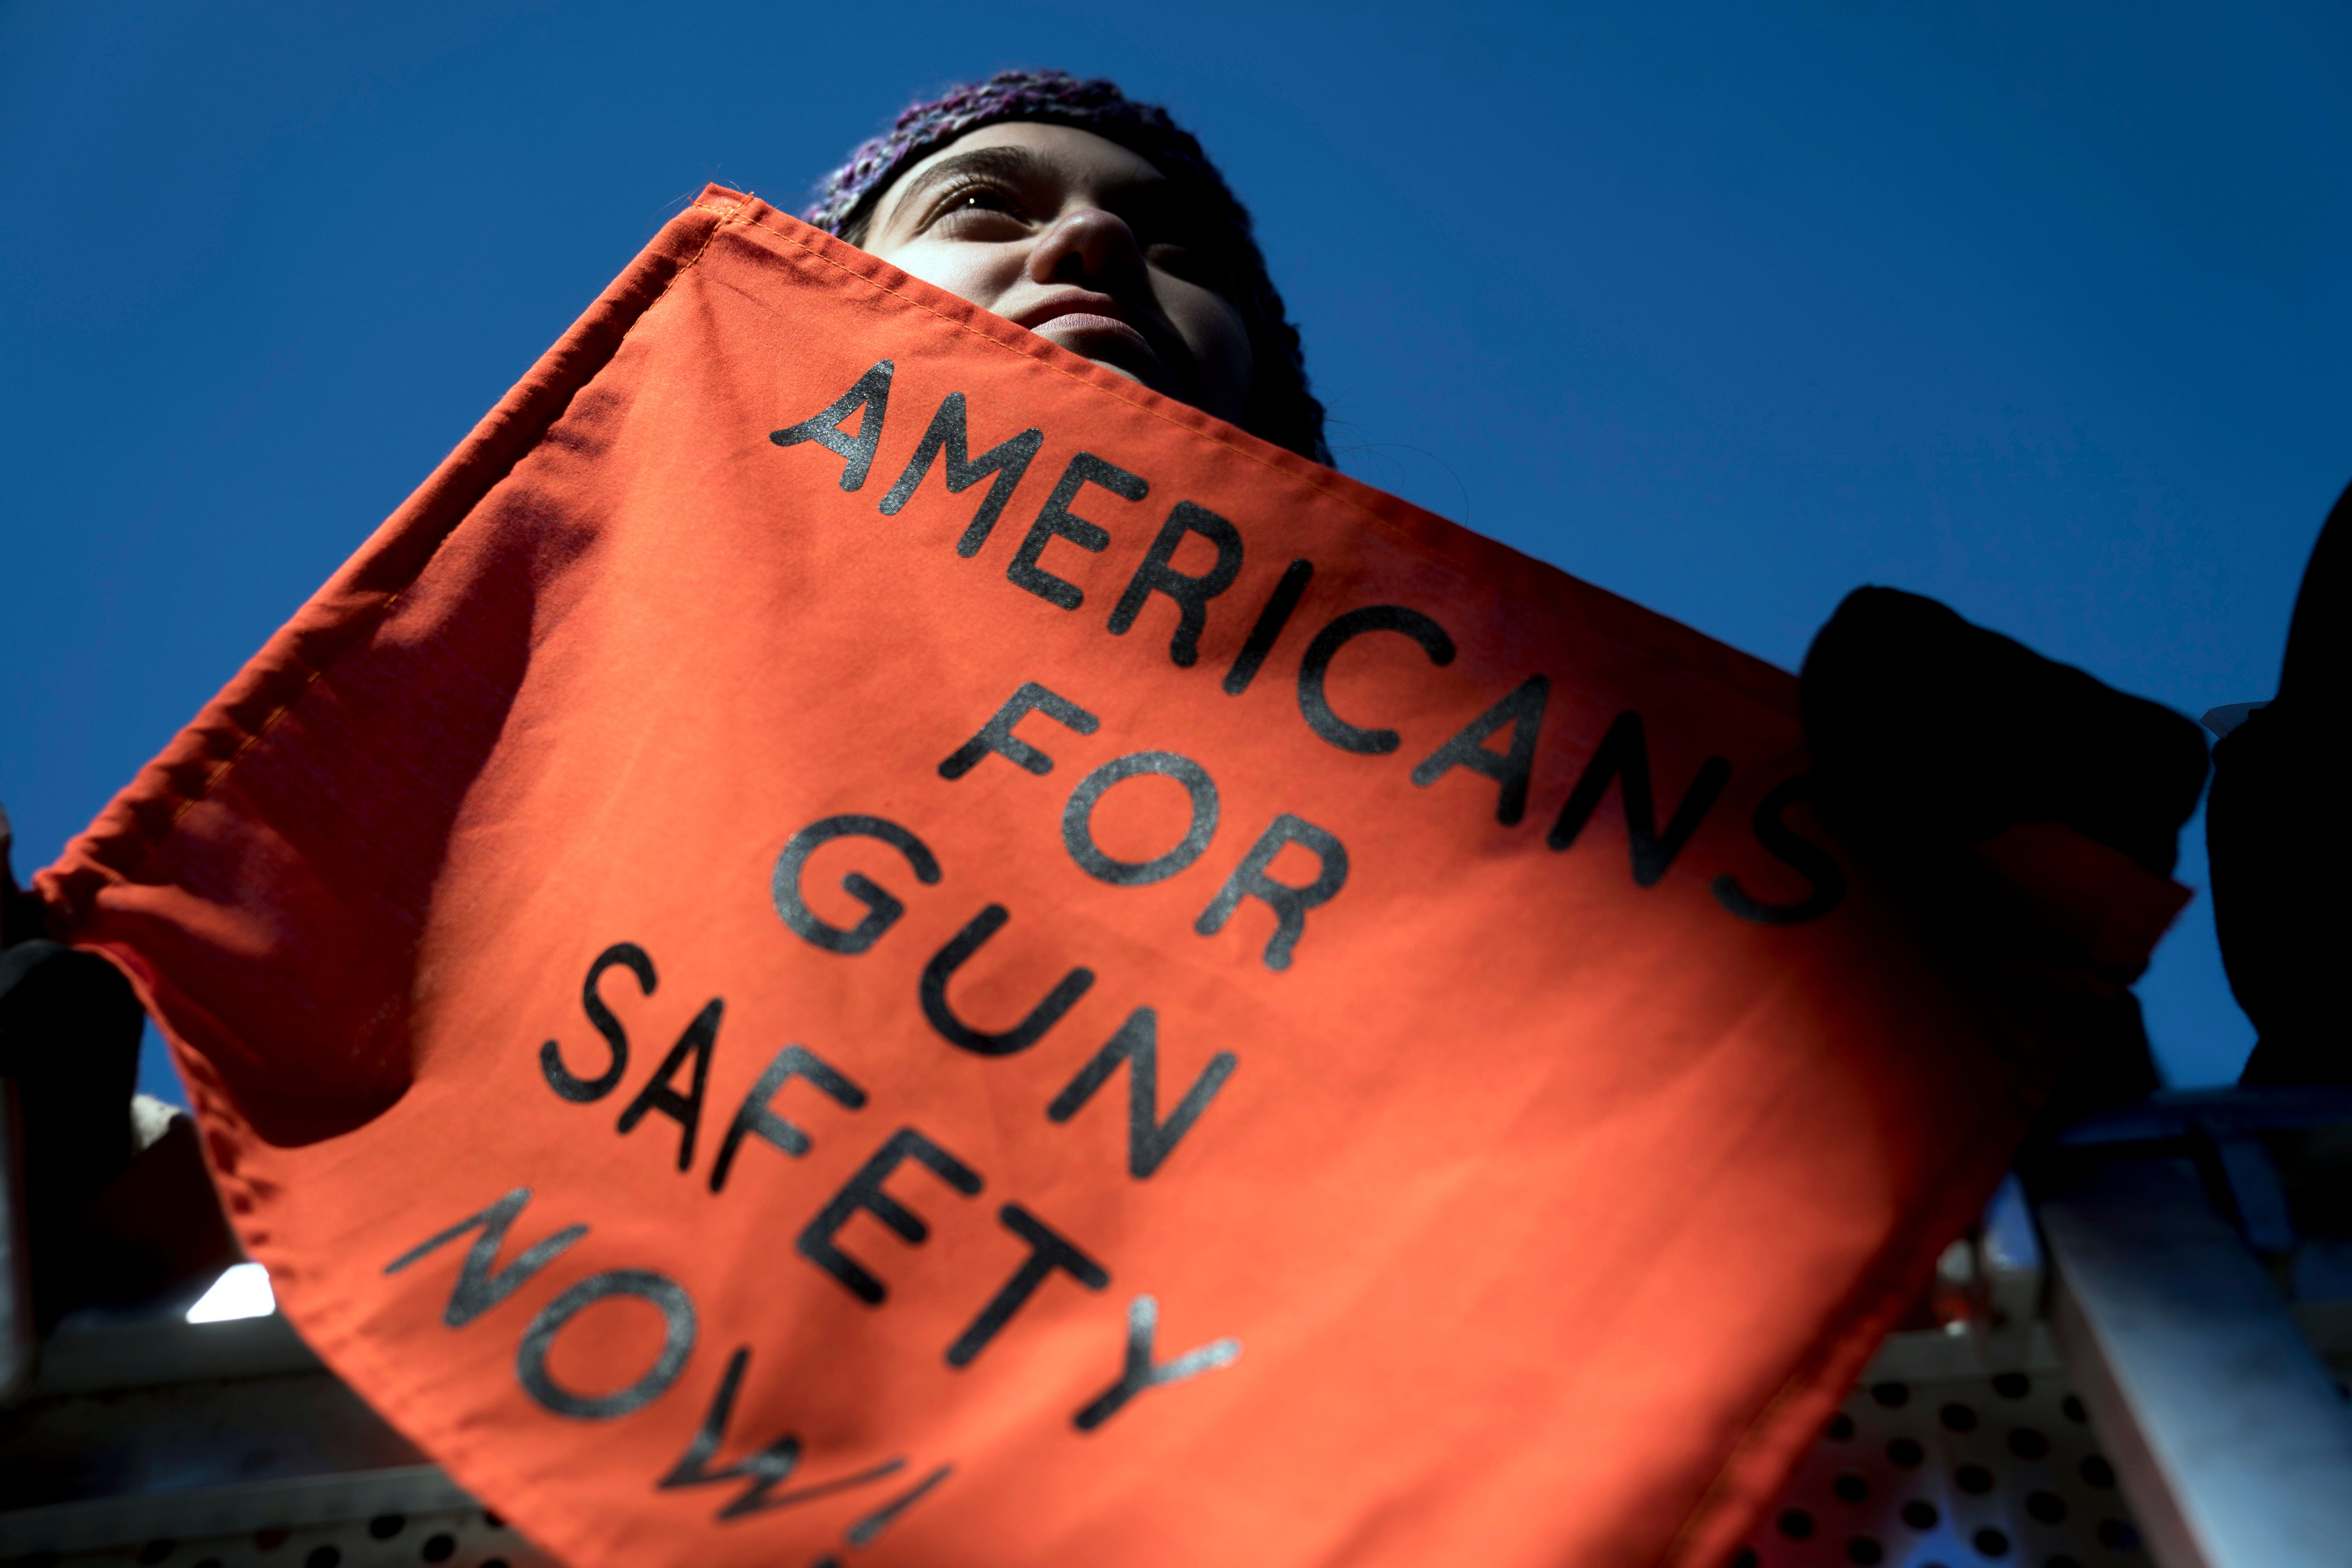 """In this March 24, 2018, file photo, Isabel White of Parkland, Fla., holds a sign that reads """"Americans for Gun Safety Now!"""" during the """"March for Our Lives"""" rally in support of gun control in Washington, that was spearheaded by teens from Marjory Stoneman Douglas High School after the 2018 mass shooting in Parkland, Fla. President Biden faces an uphill battle as he tries to push for more state laws that would allow authorities to temporarily disarm people who are considered a danger to themselves or others."""